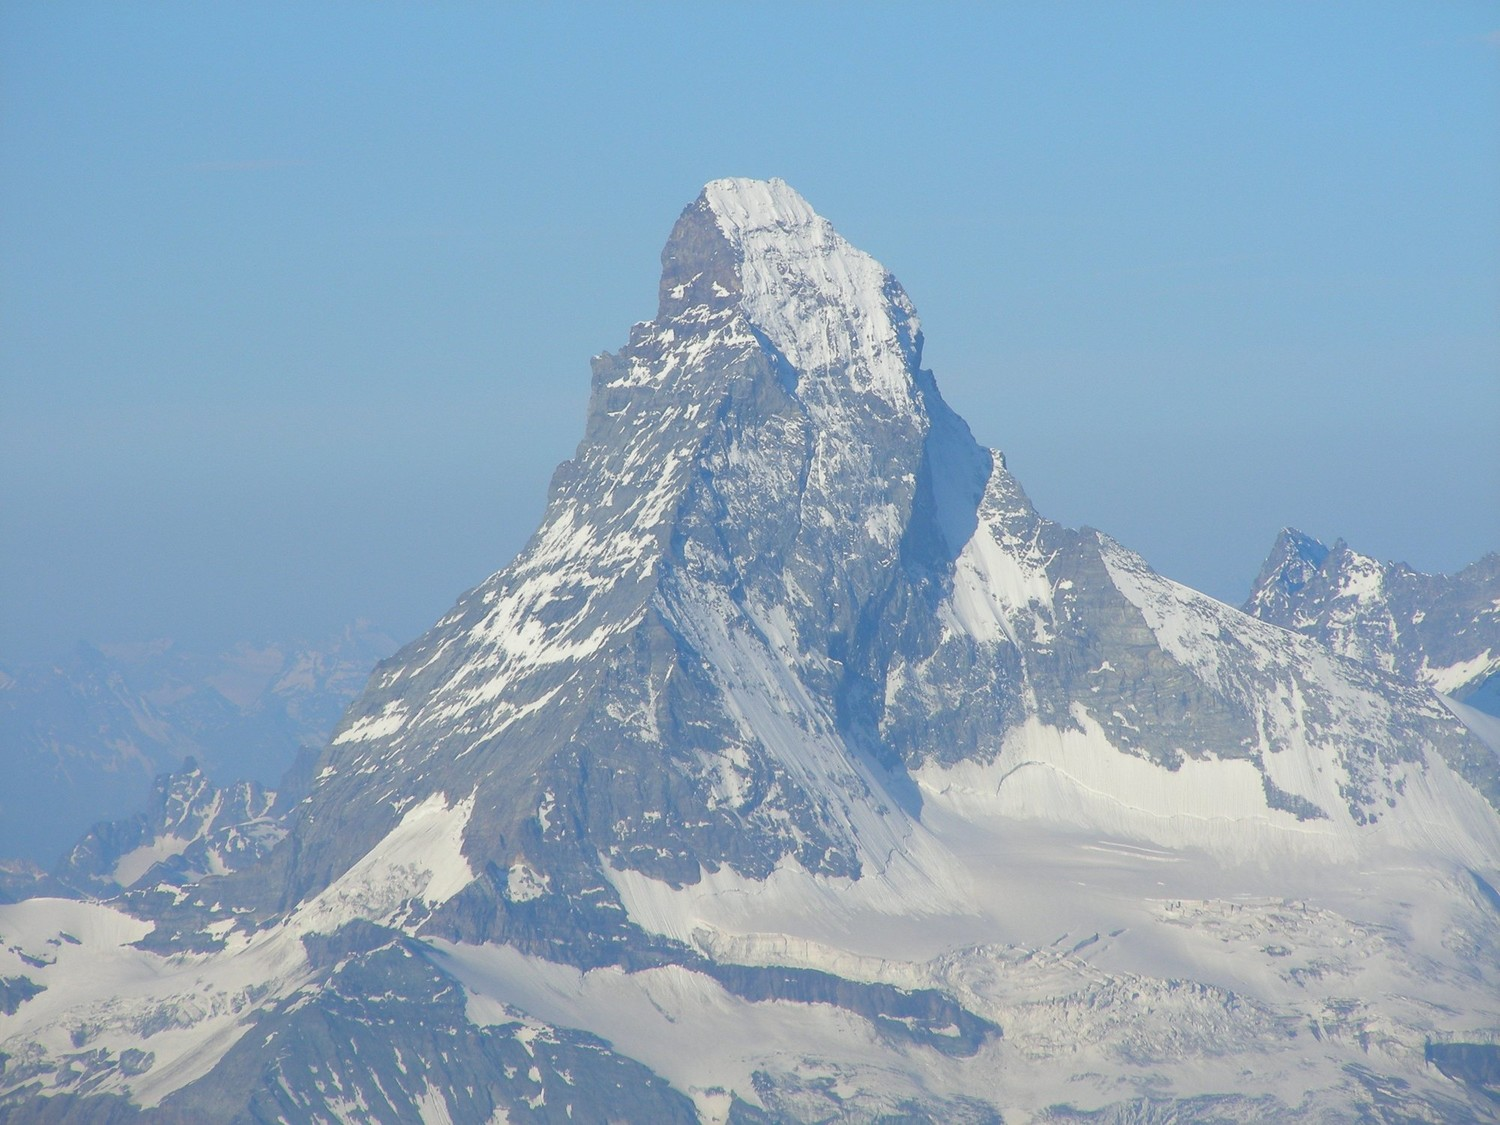 The Matterhorn seen from the Dirrujoch